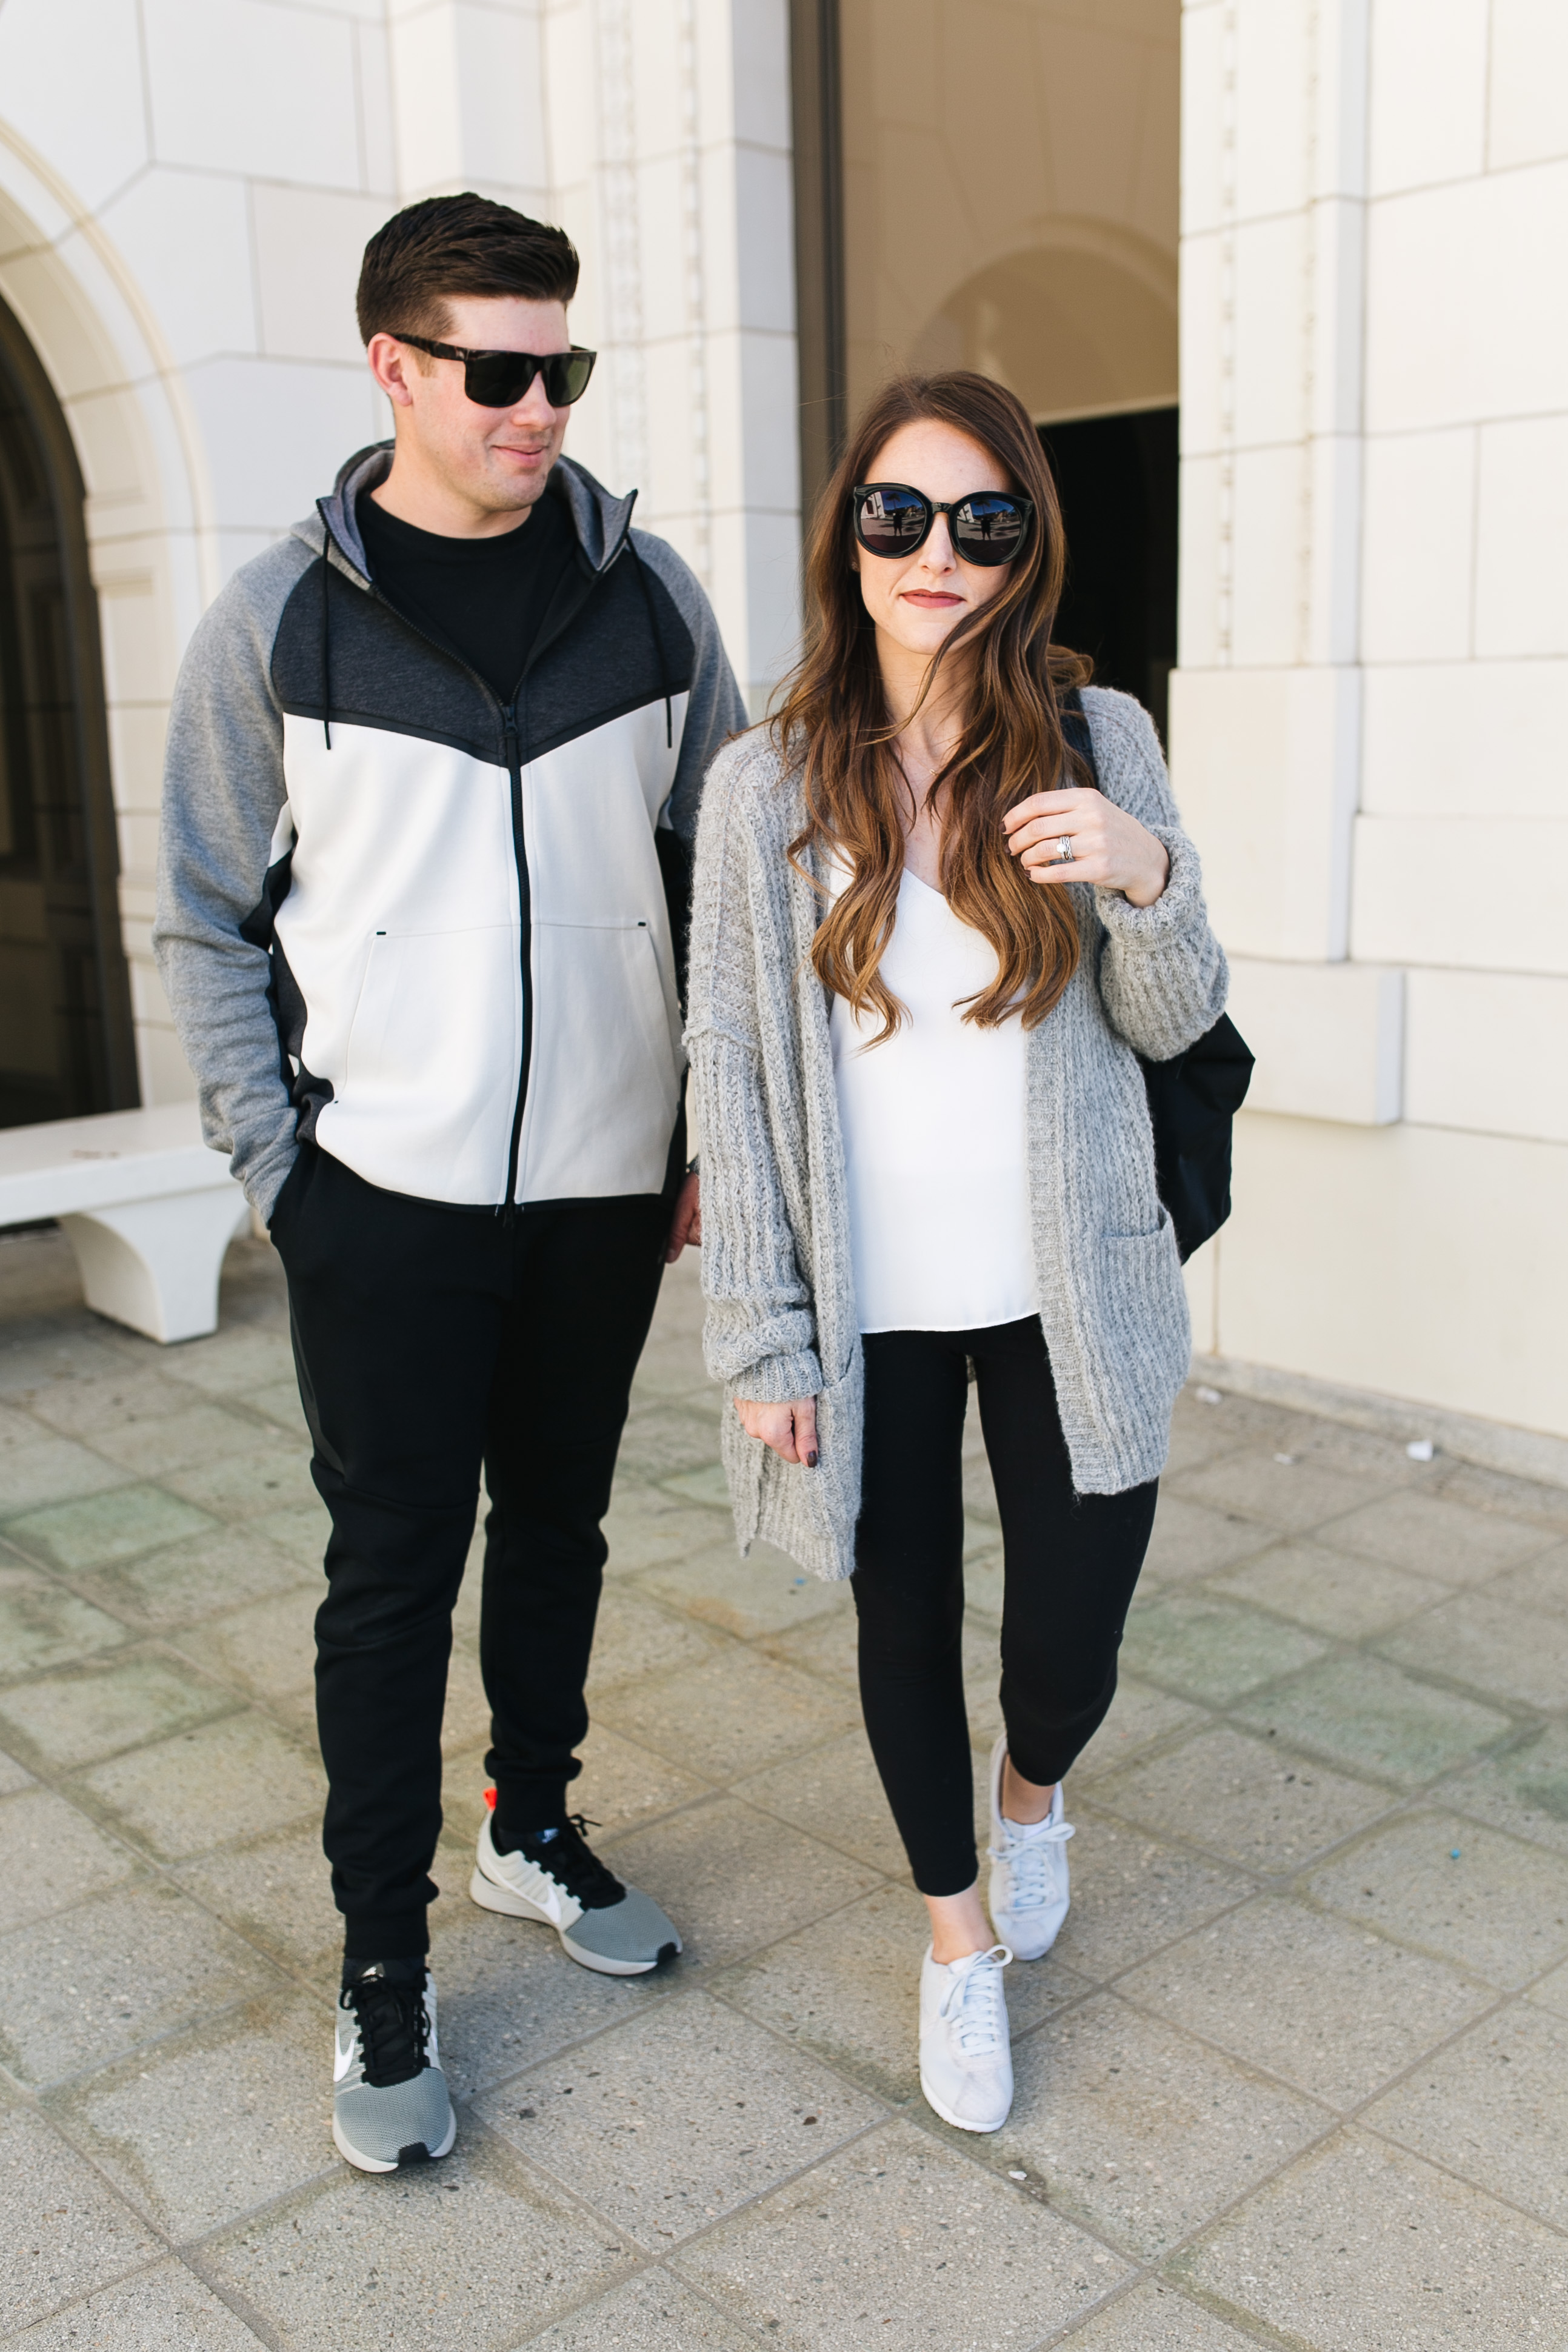 Style blogger Daryl-Ann Denner shares travel style inspiration for men and women including nike shoes and joggers